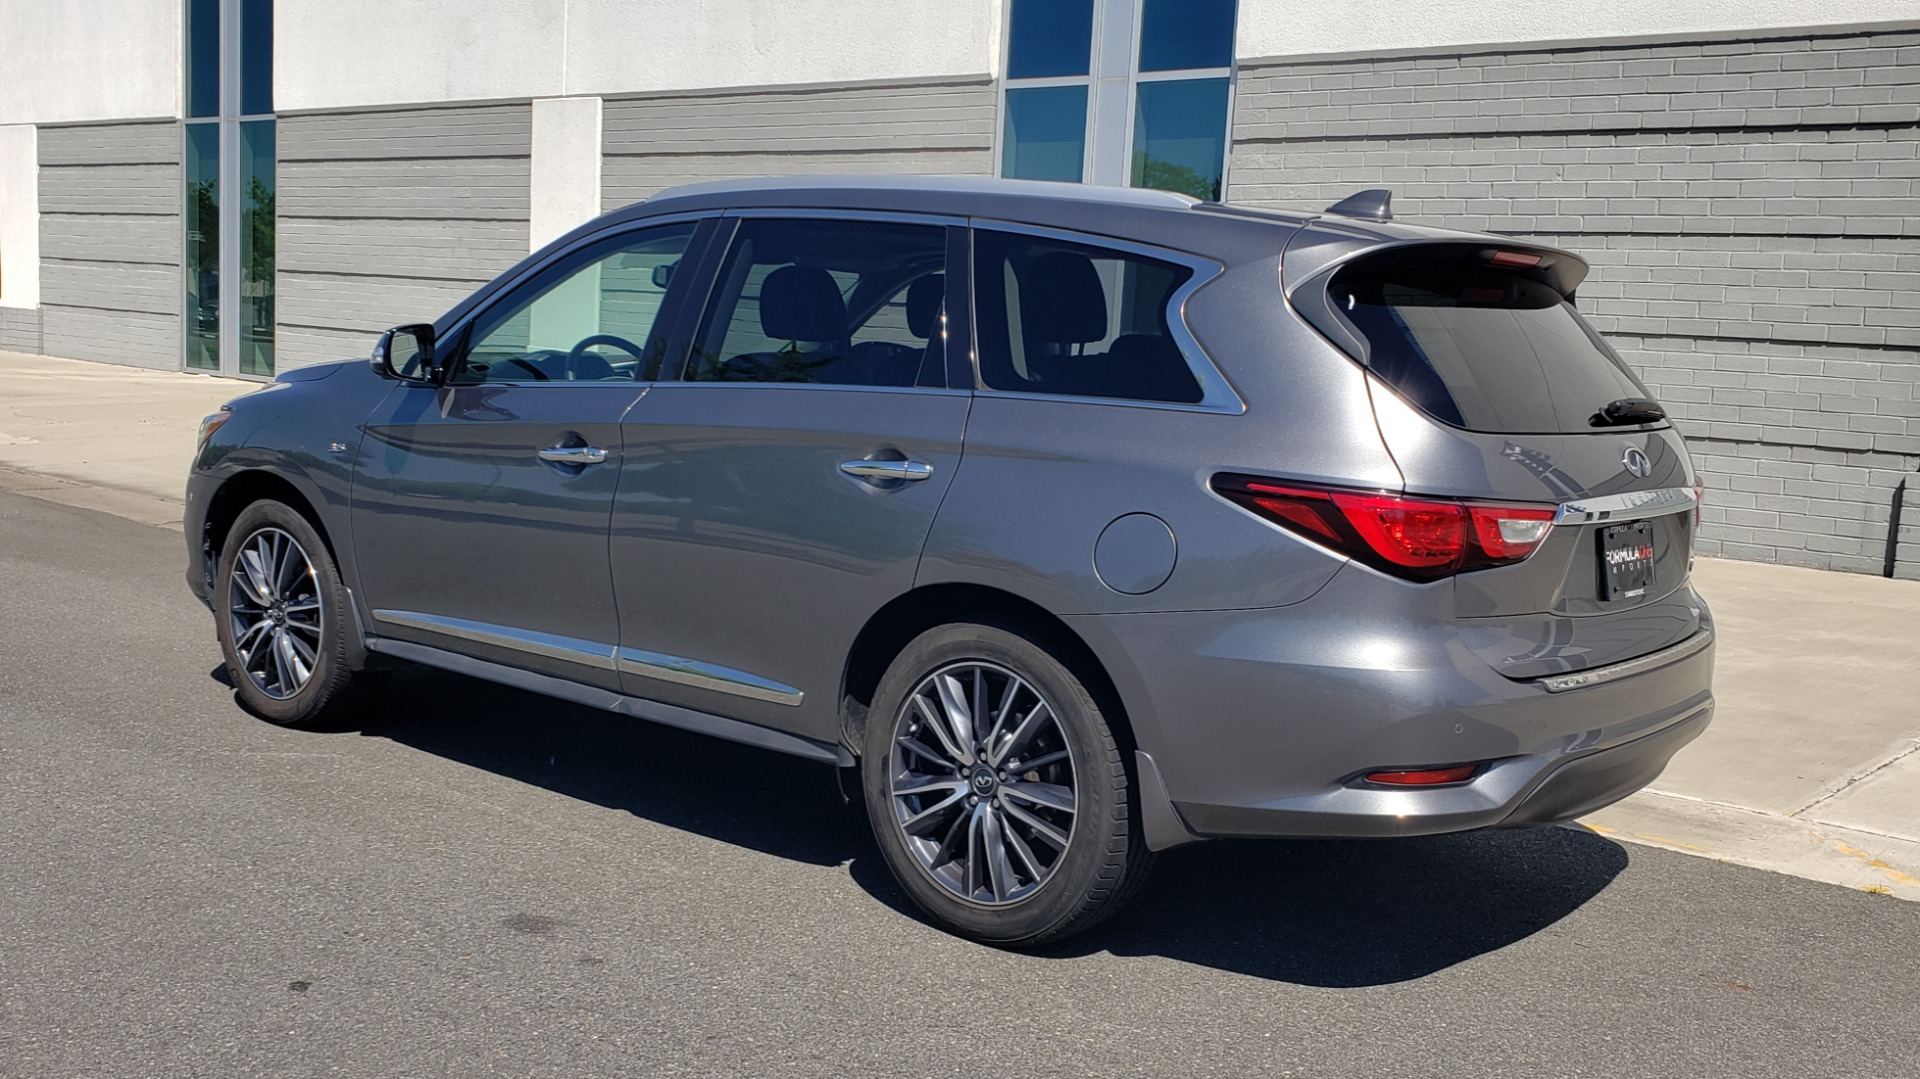 Used 2018 INFINITI QX60 3.5L V6 / FWD / CVT TRANS / NAV / SUNROOF / 3-ROWS / REARVIEW for sale $31,999 at Formula Imports in Charlotte NC 28227 6